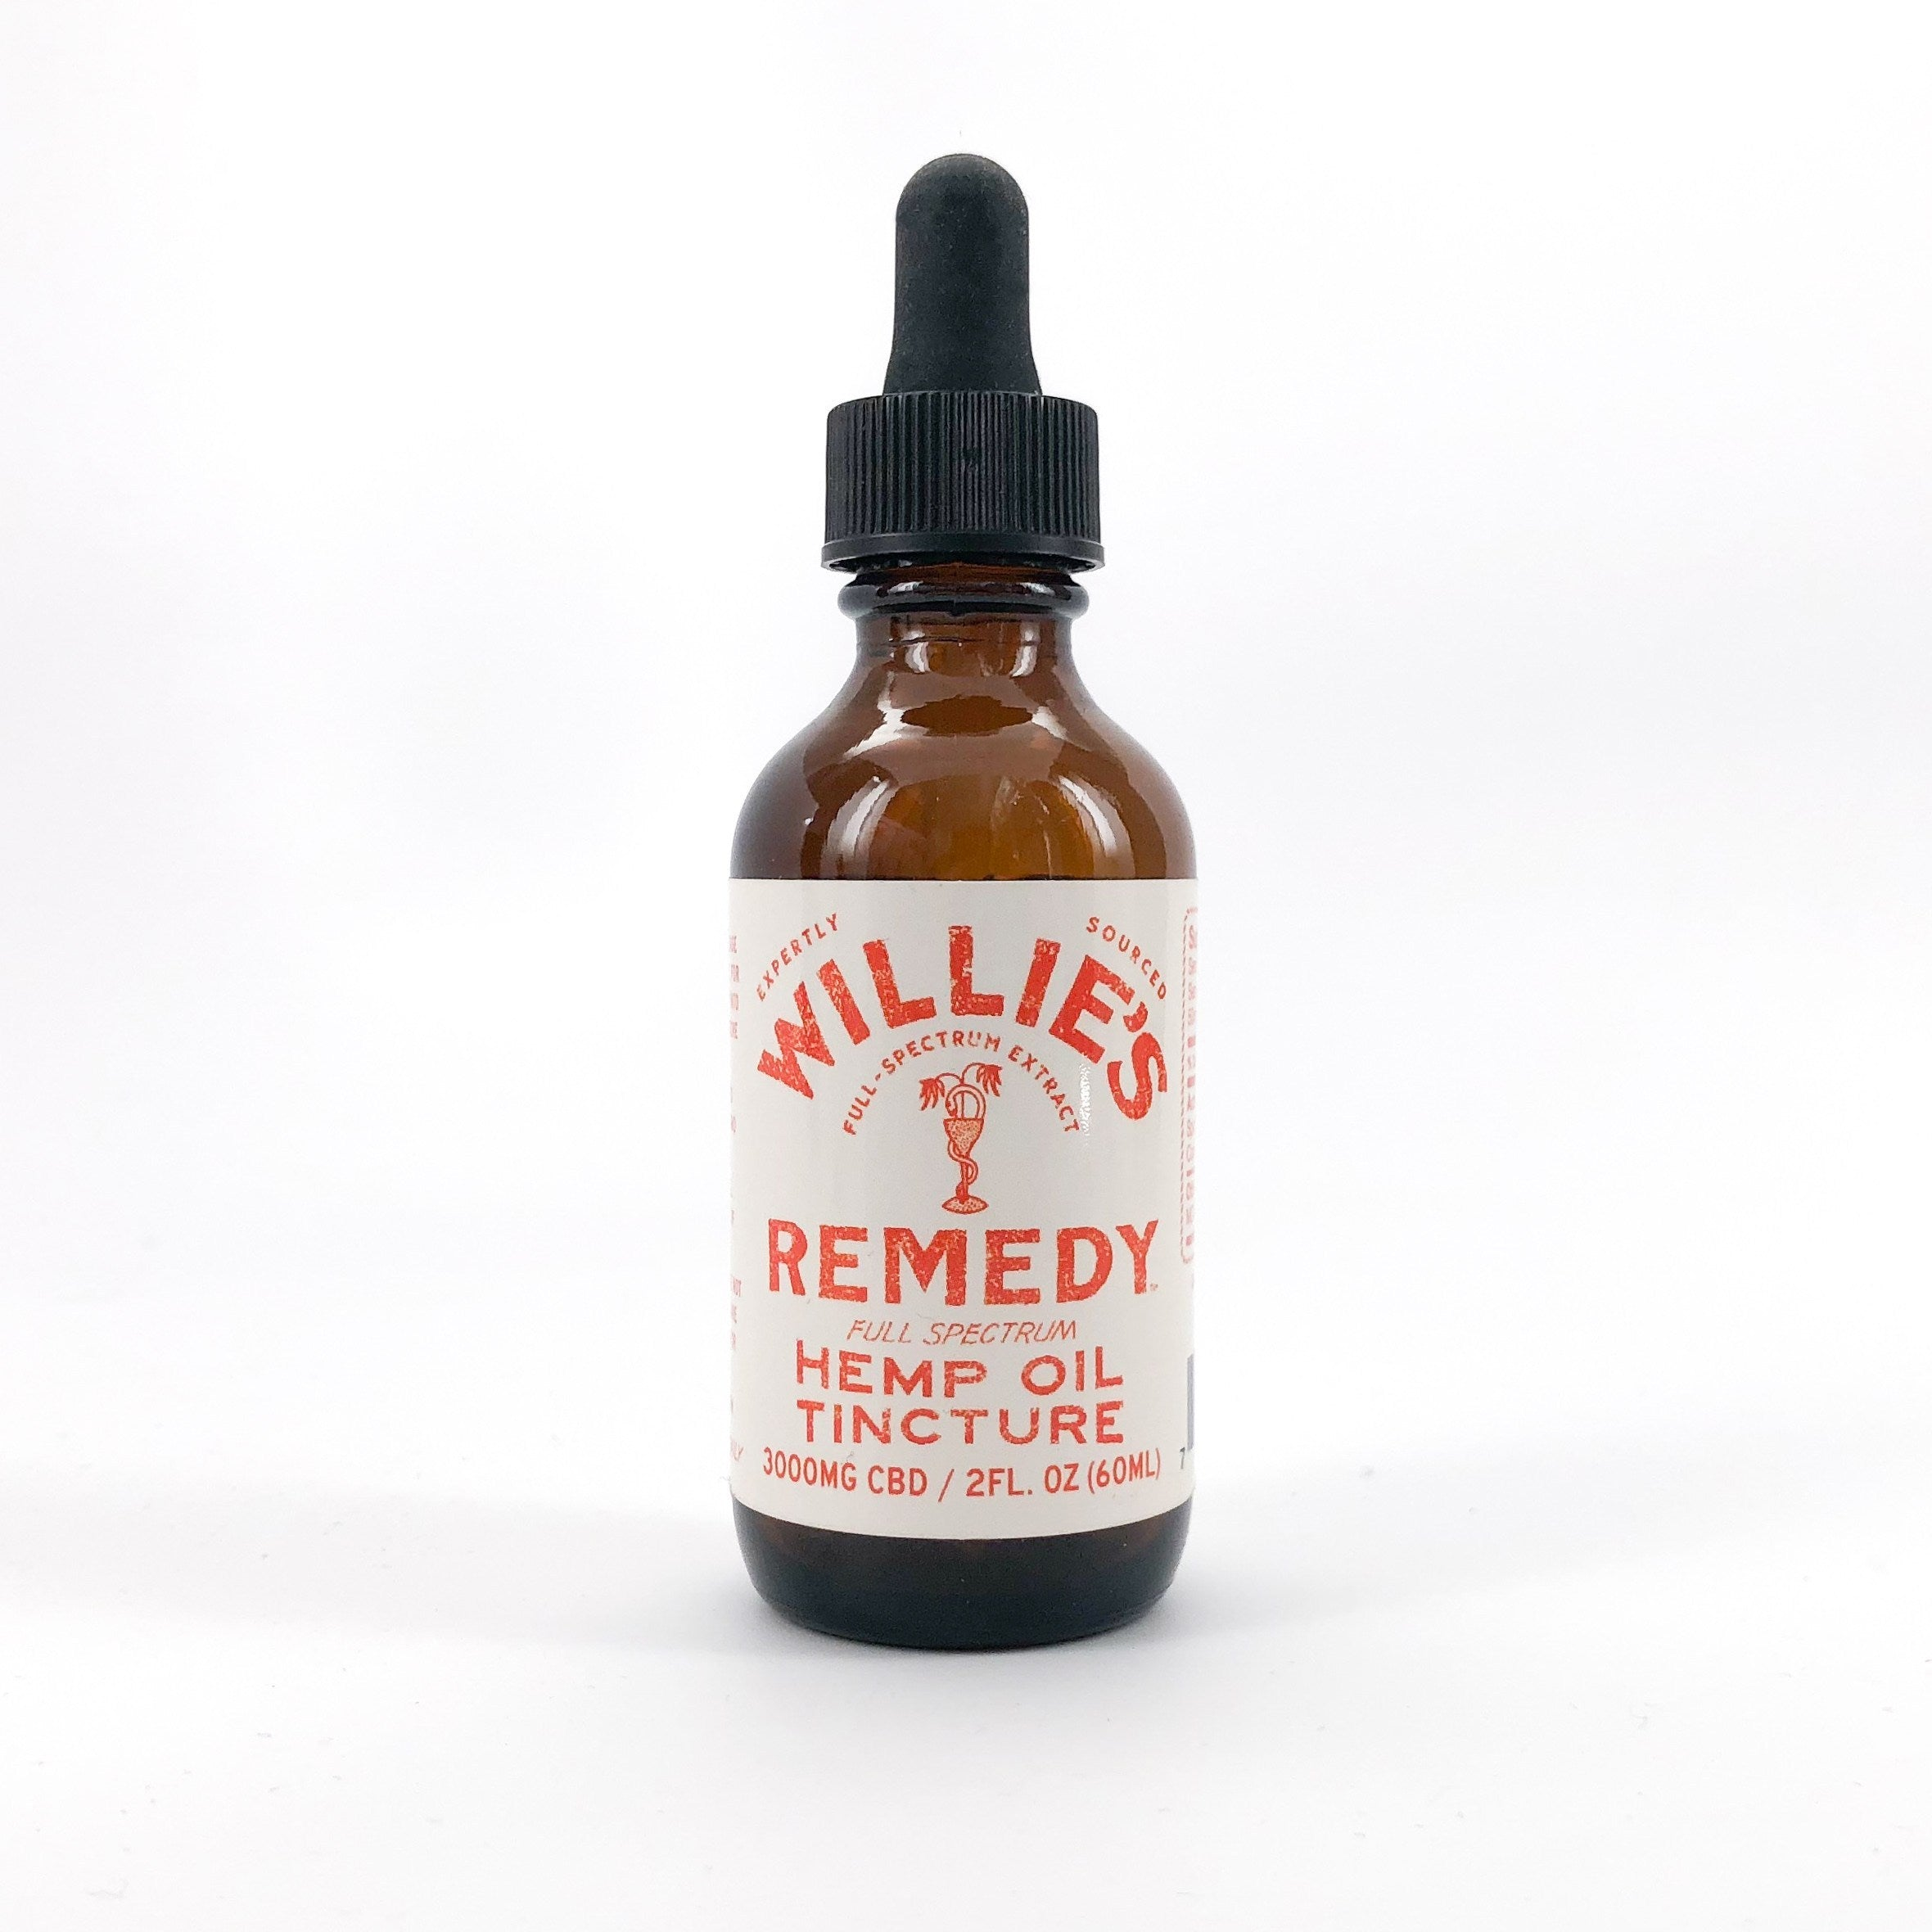 Willie's Remedy Full Spectrum Hemp Oil Tincture 3000MG CBD, 2 Fl. Oz. (50mg) - My CBD Mall